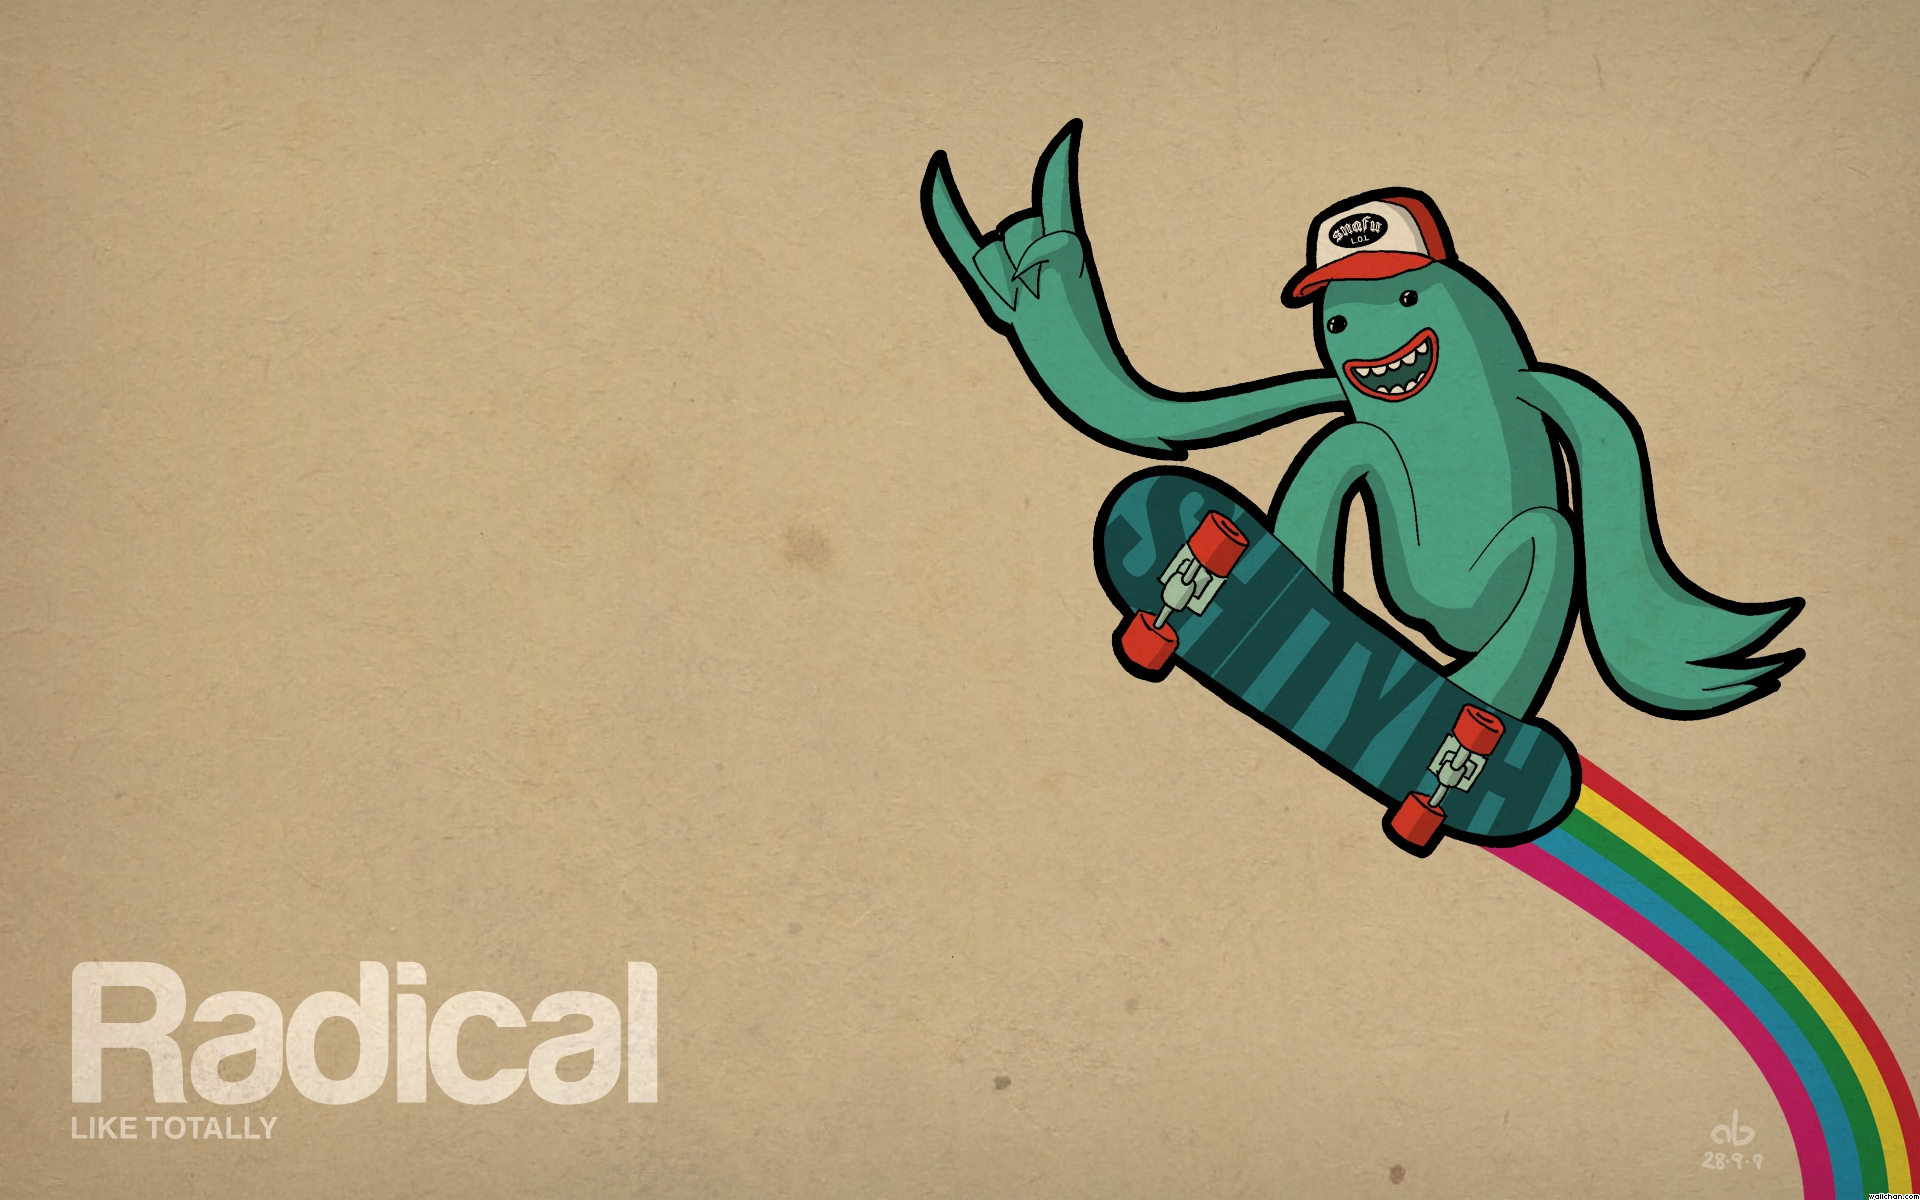 Funny Radical Skateboard Backgrounds